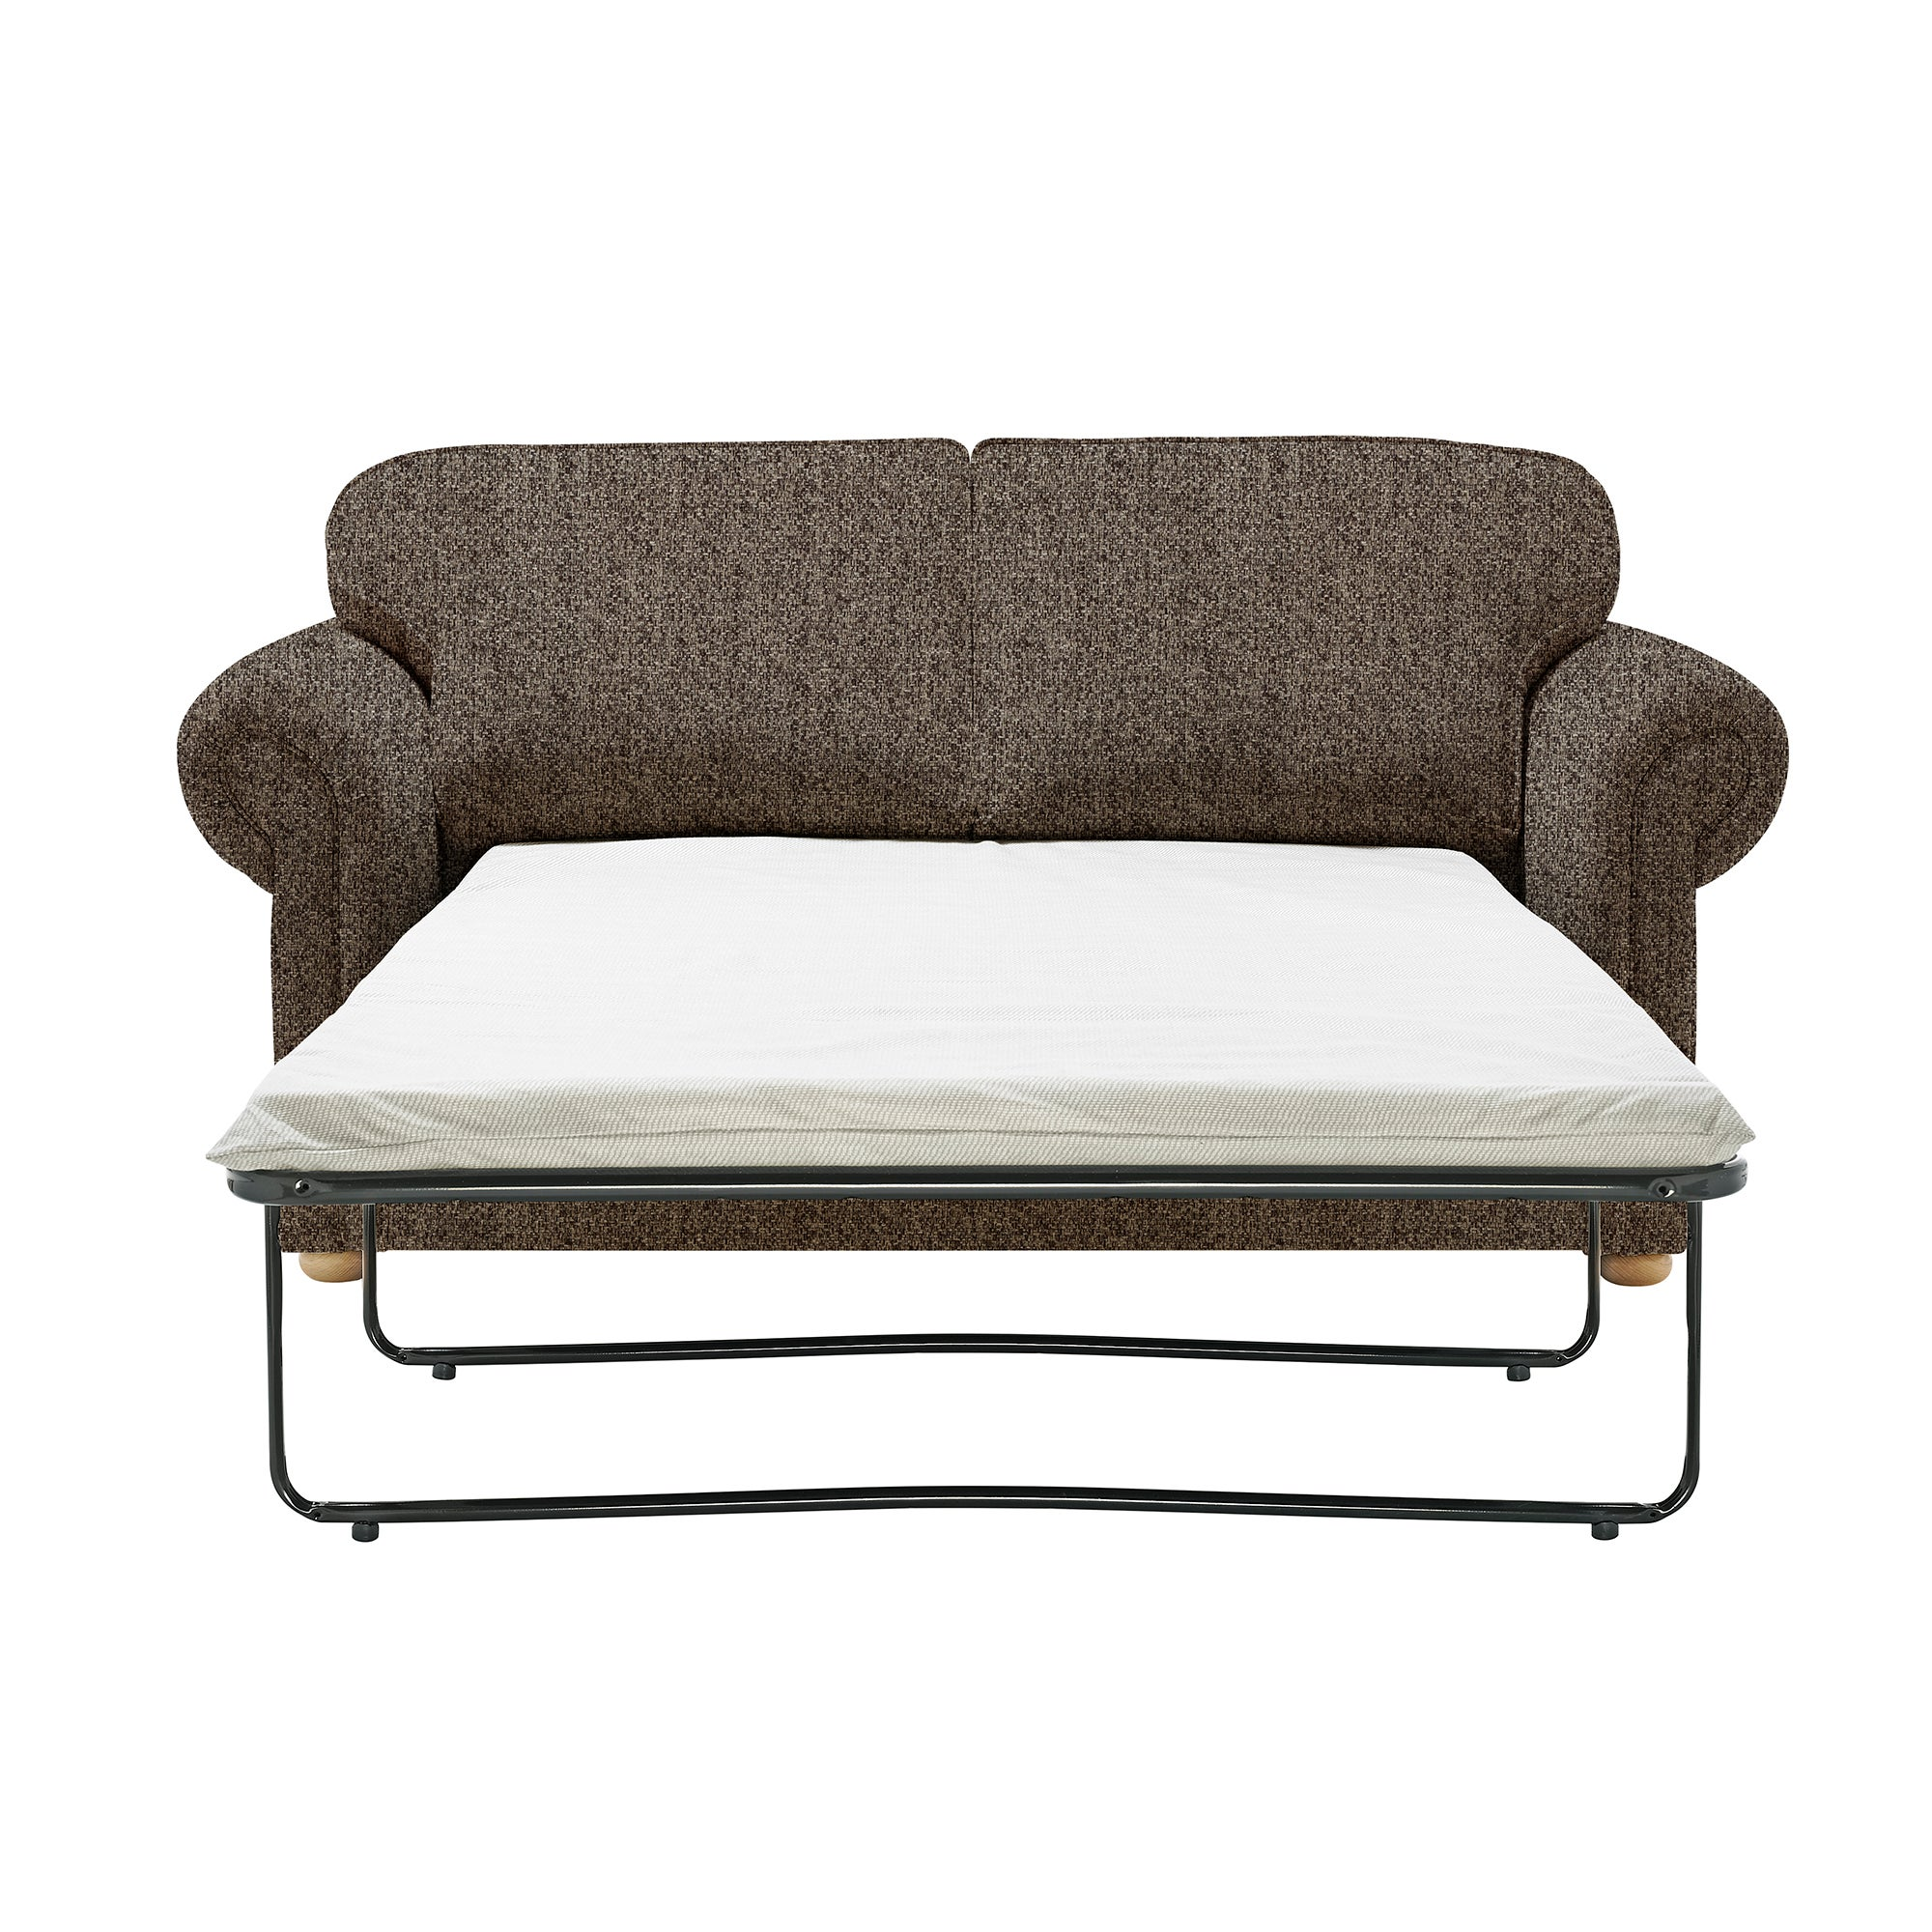 Folding Sofa Bed Shop For Cheap Sofas And Save Online